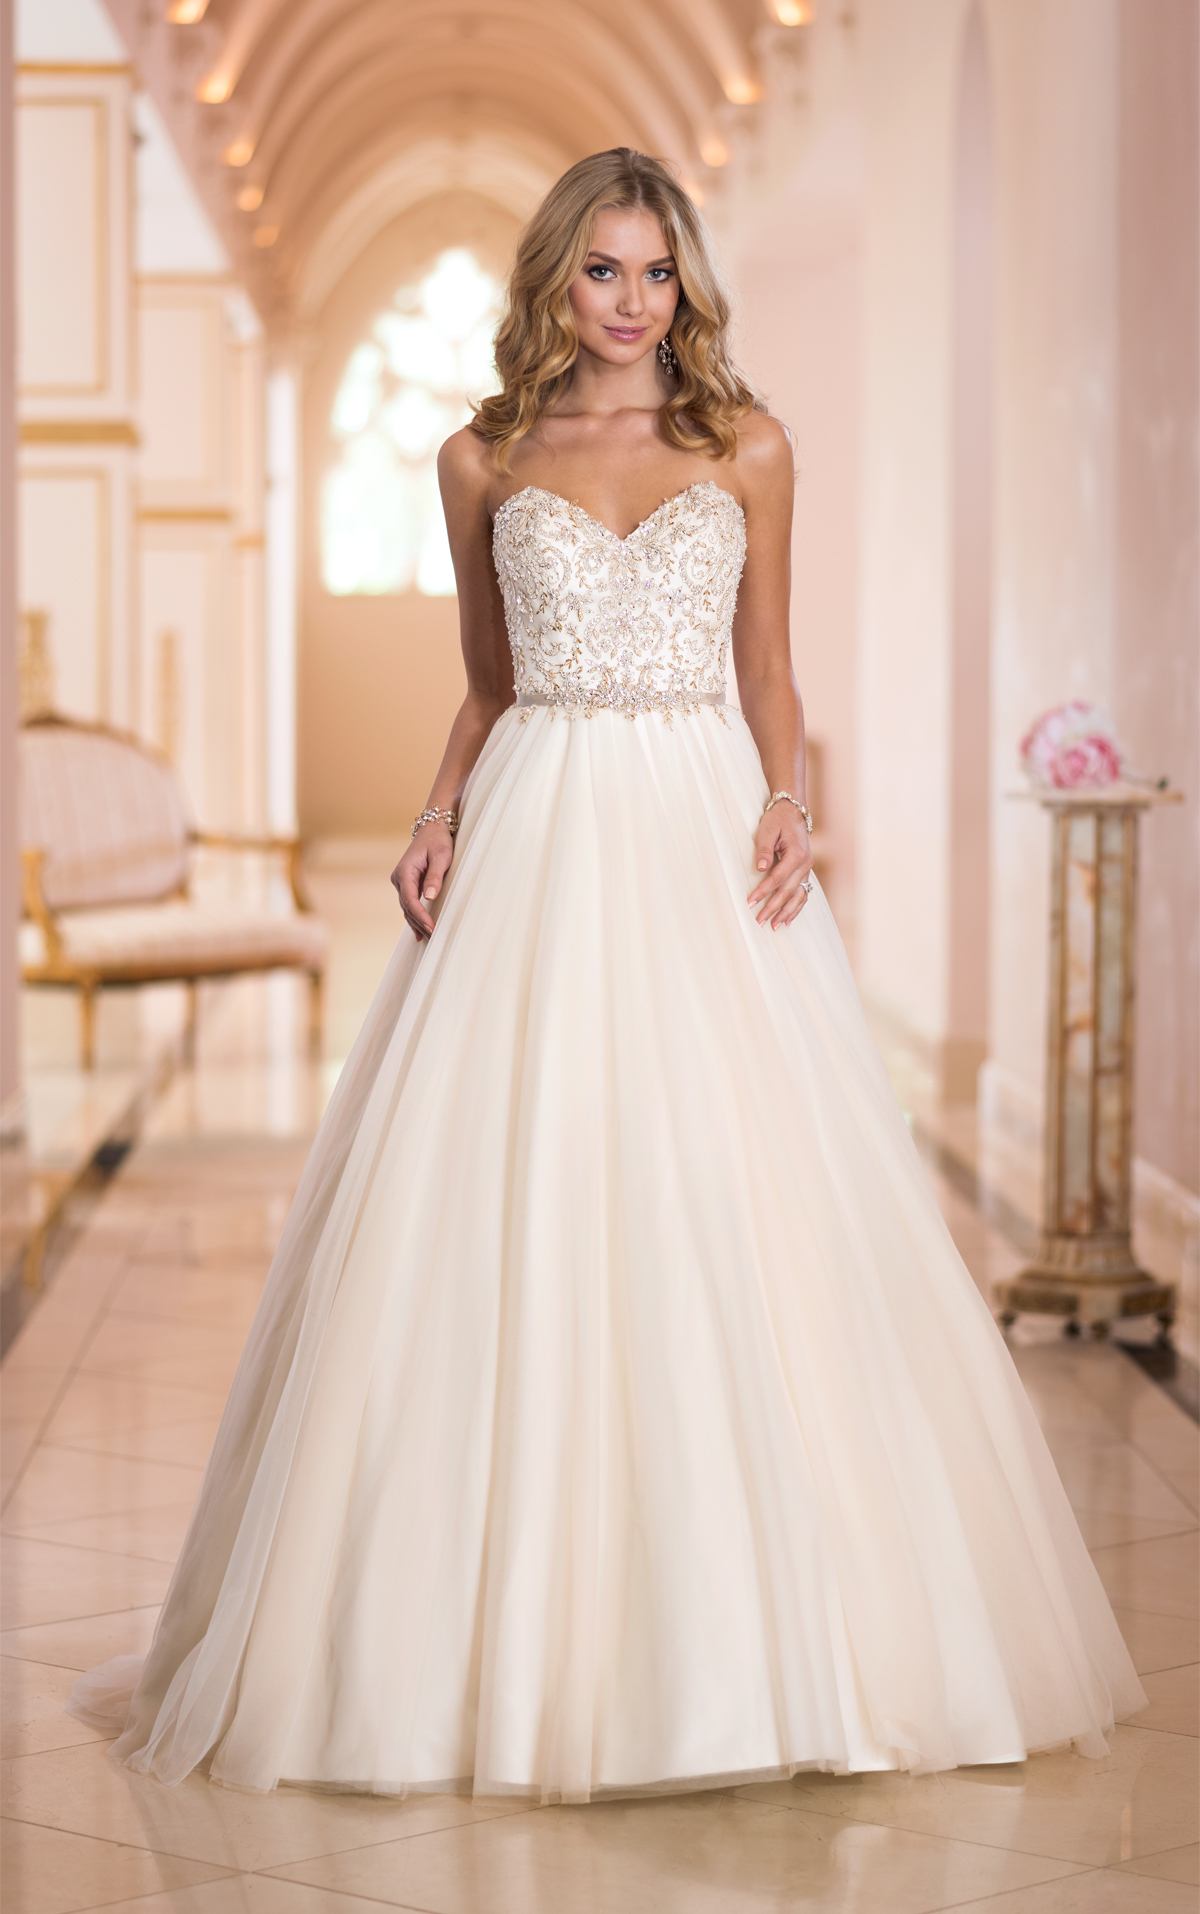 Extravagant Princess Wedding Dresses : Sexy and extravagant stella york wedding dresses